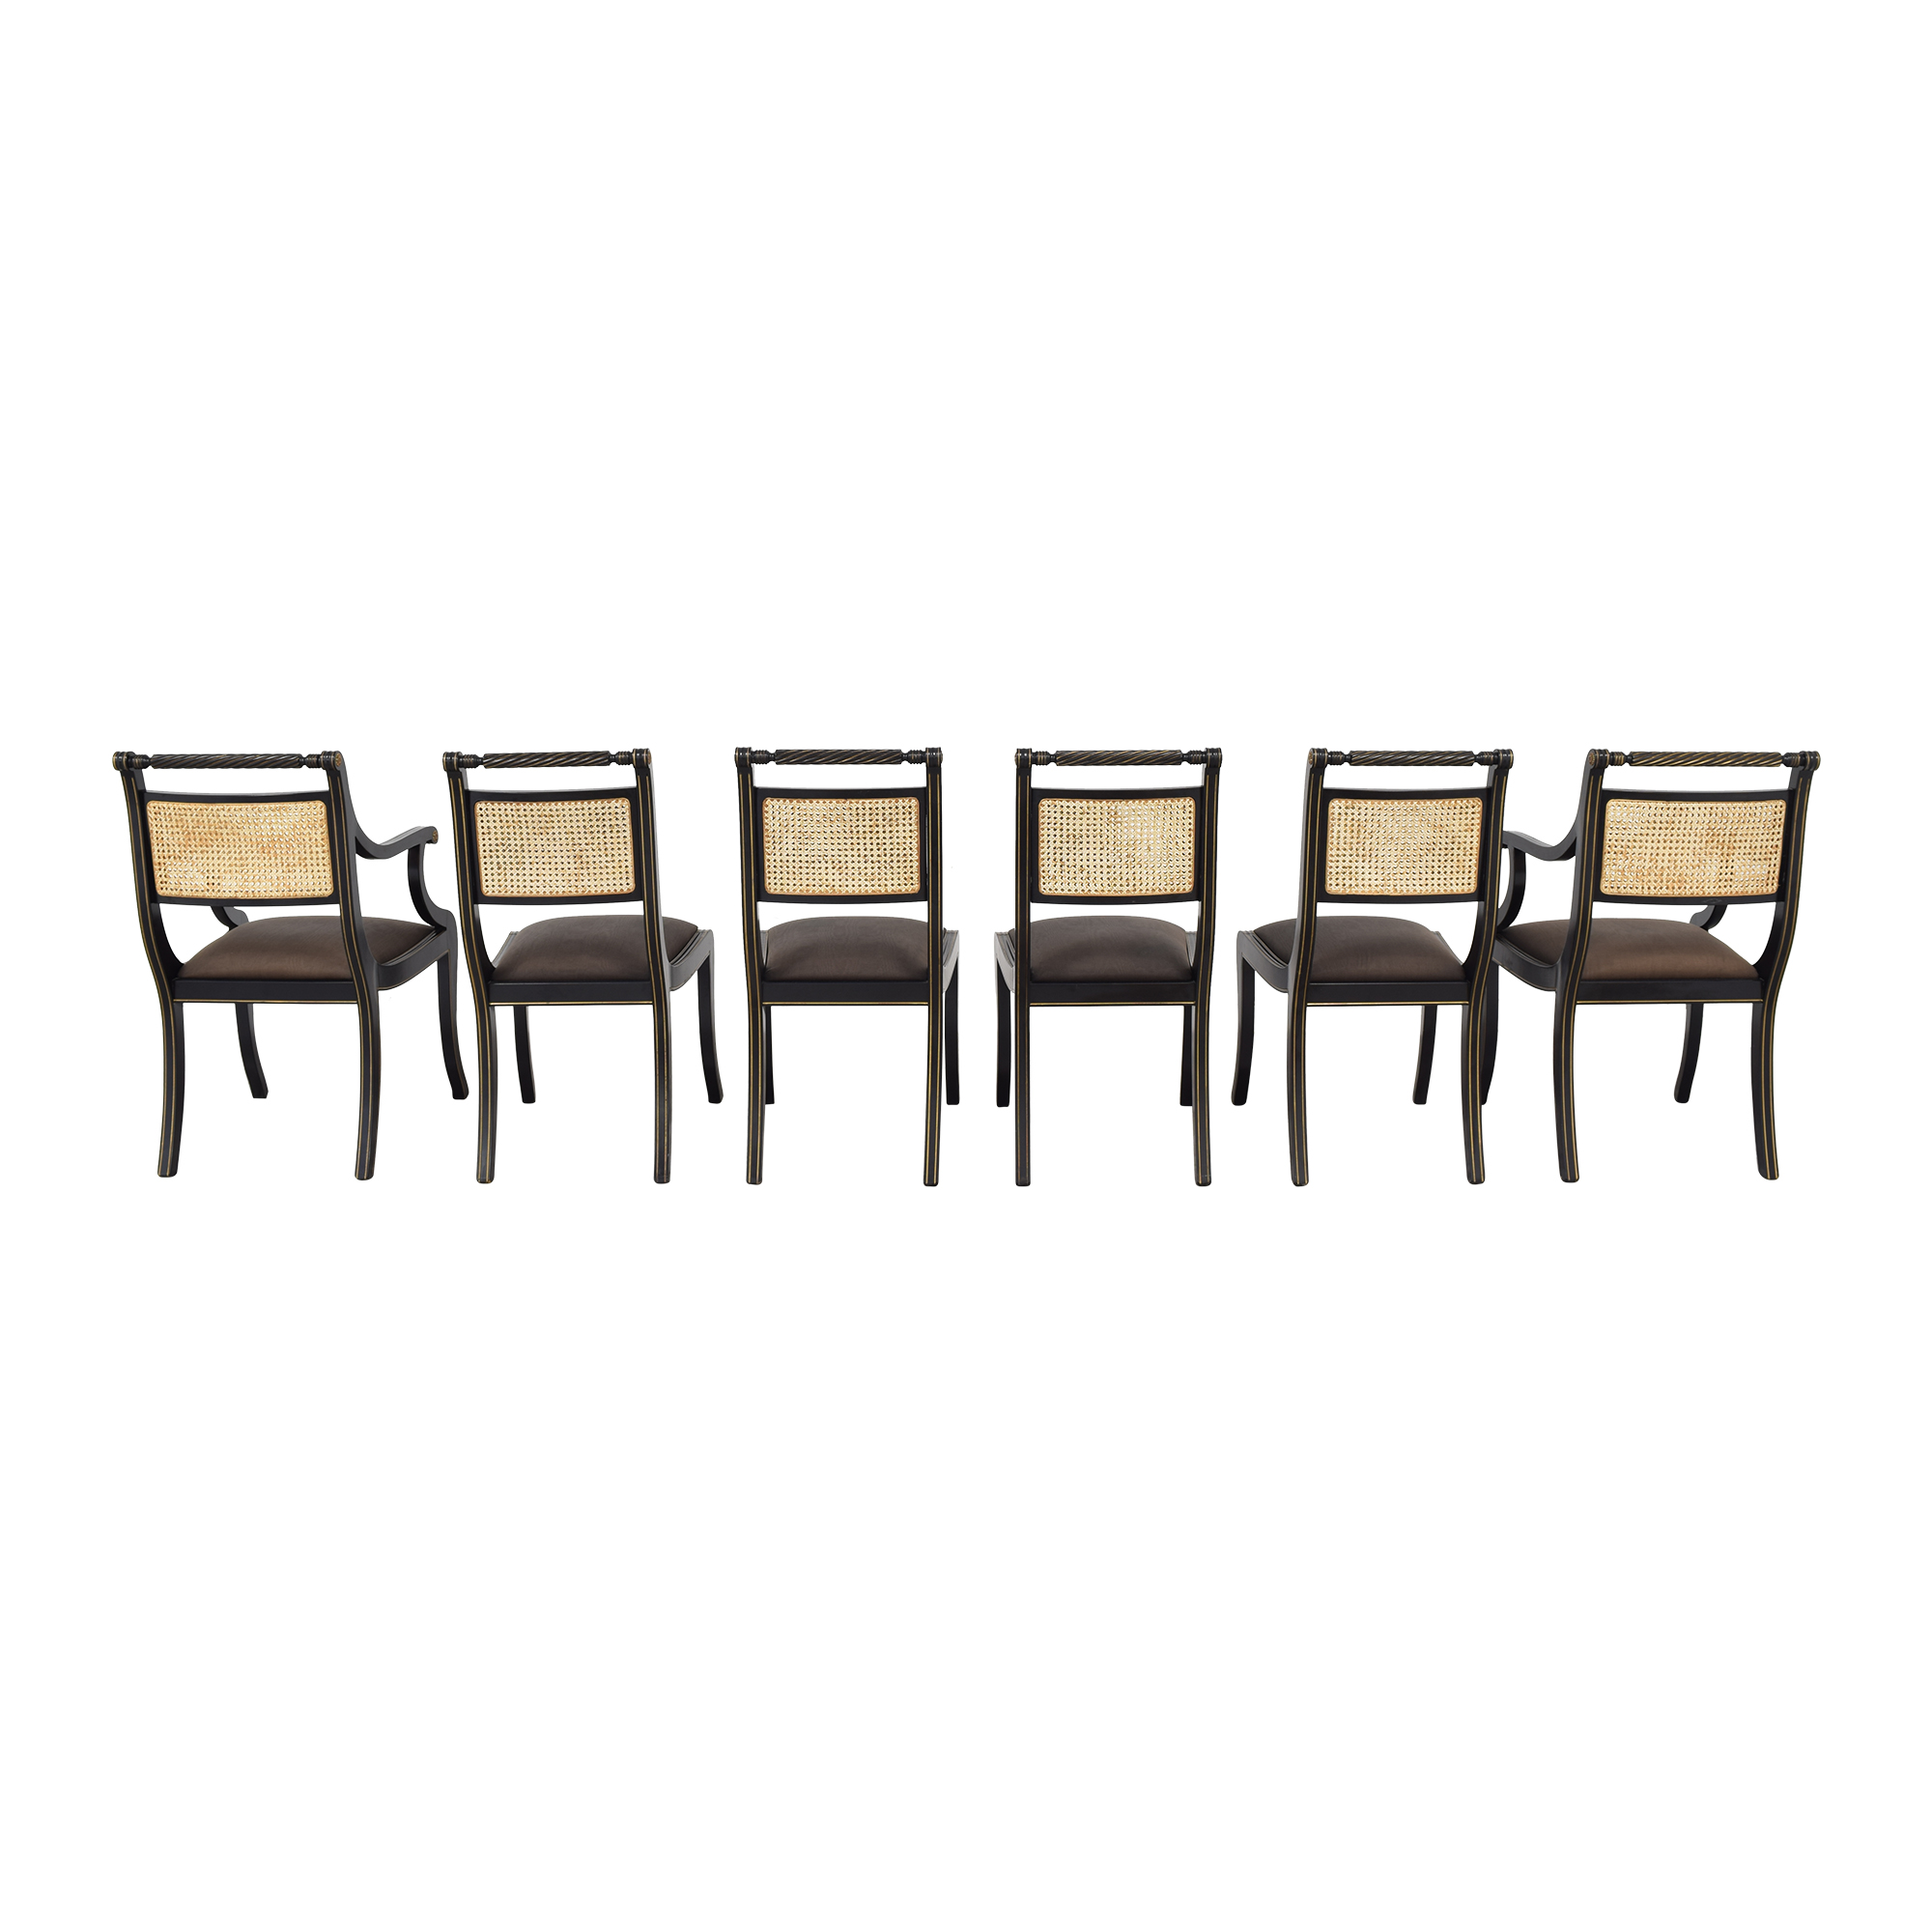 Bloomingdale's Italian Cane Back Dining Chairs / Dining Chairs